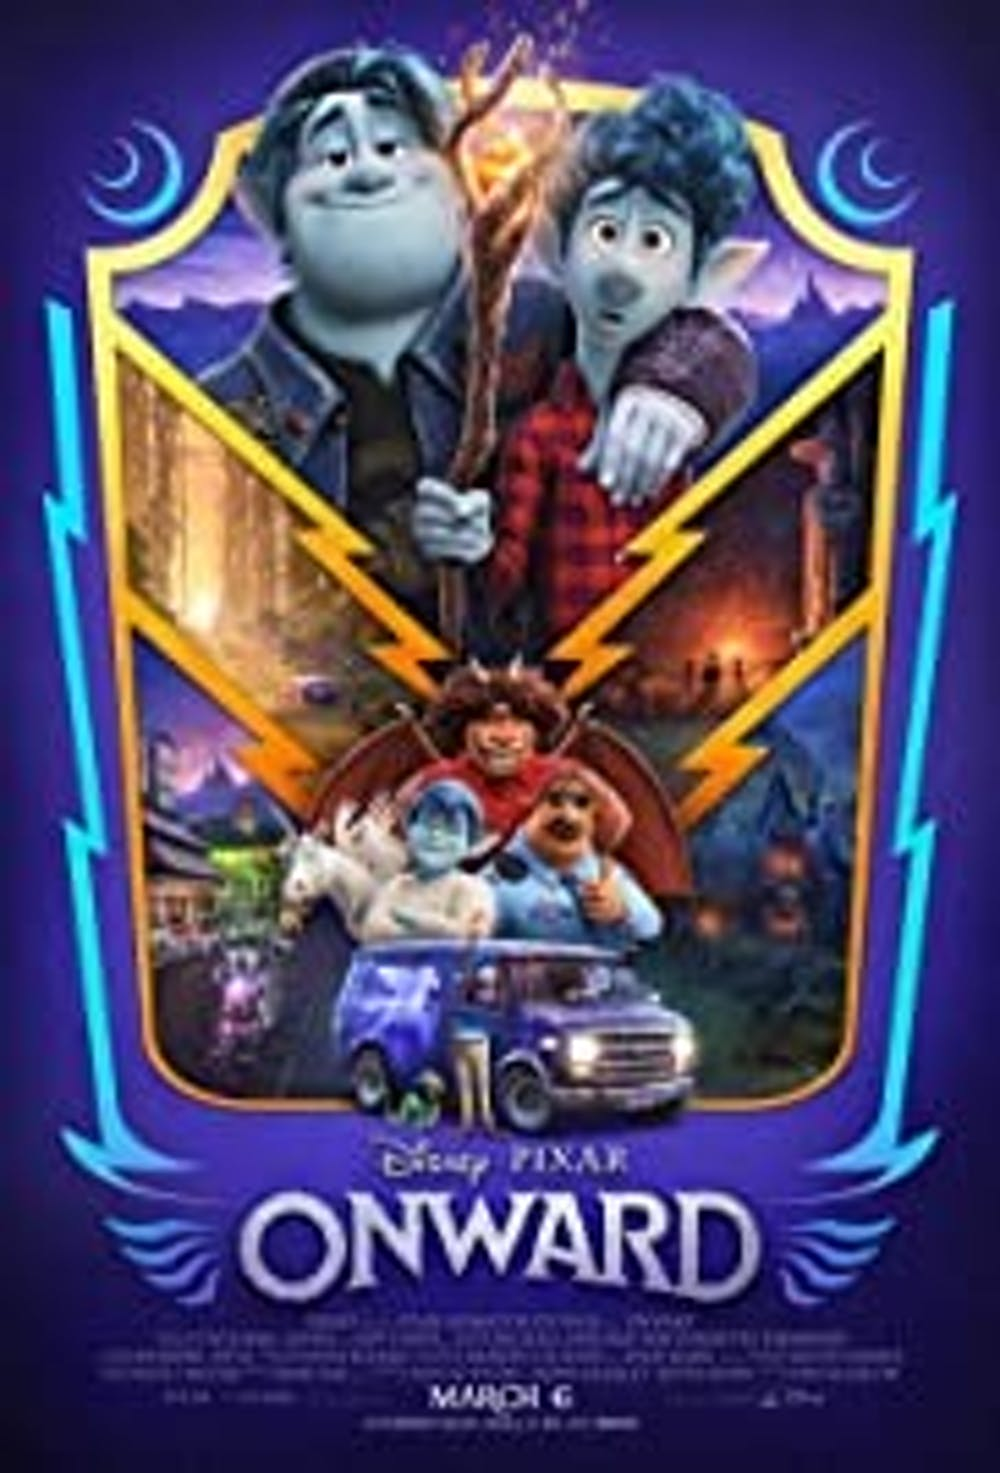 Review: Disney's 'Onward' arrives just in time to warm the hearts of millions when we need it most